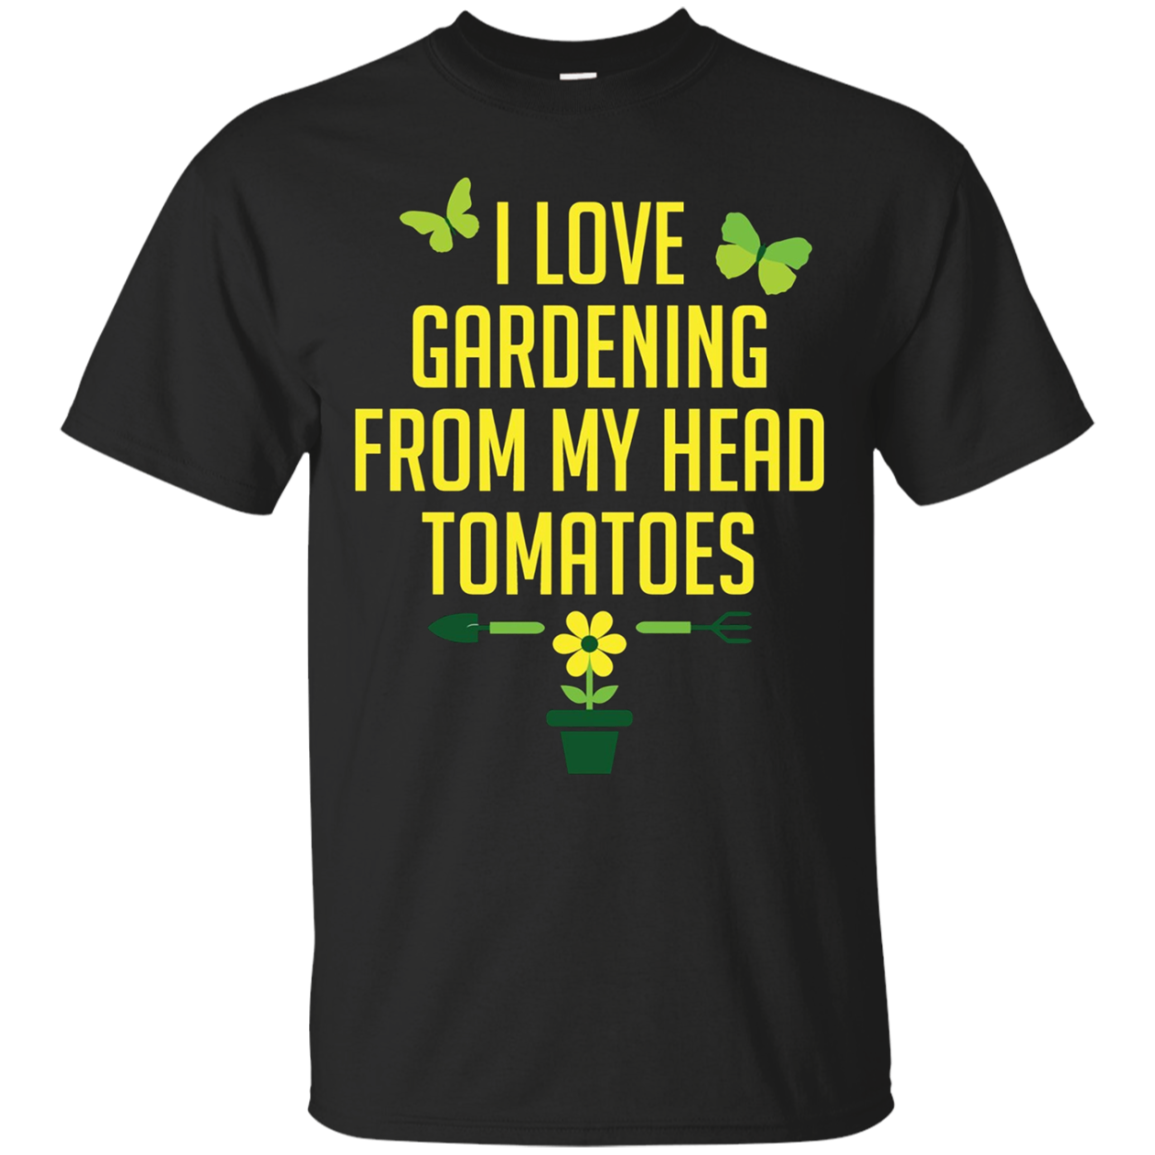 Gardening Pun T-Shirt I Love to Garden Shirt